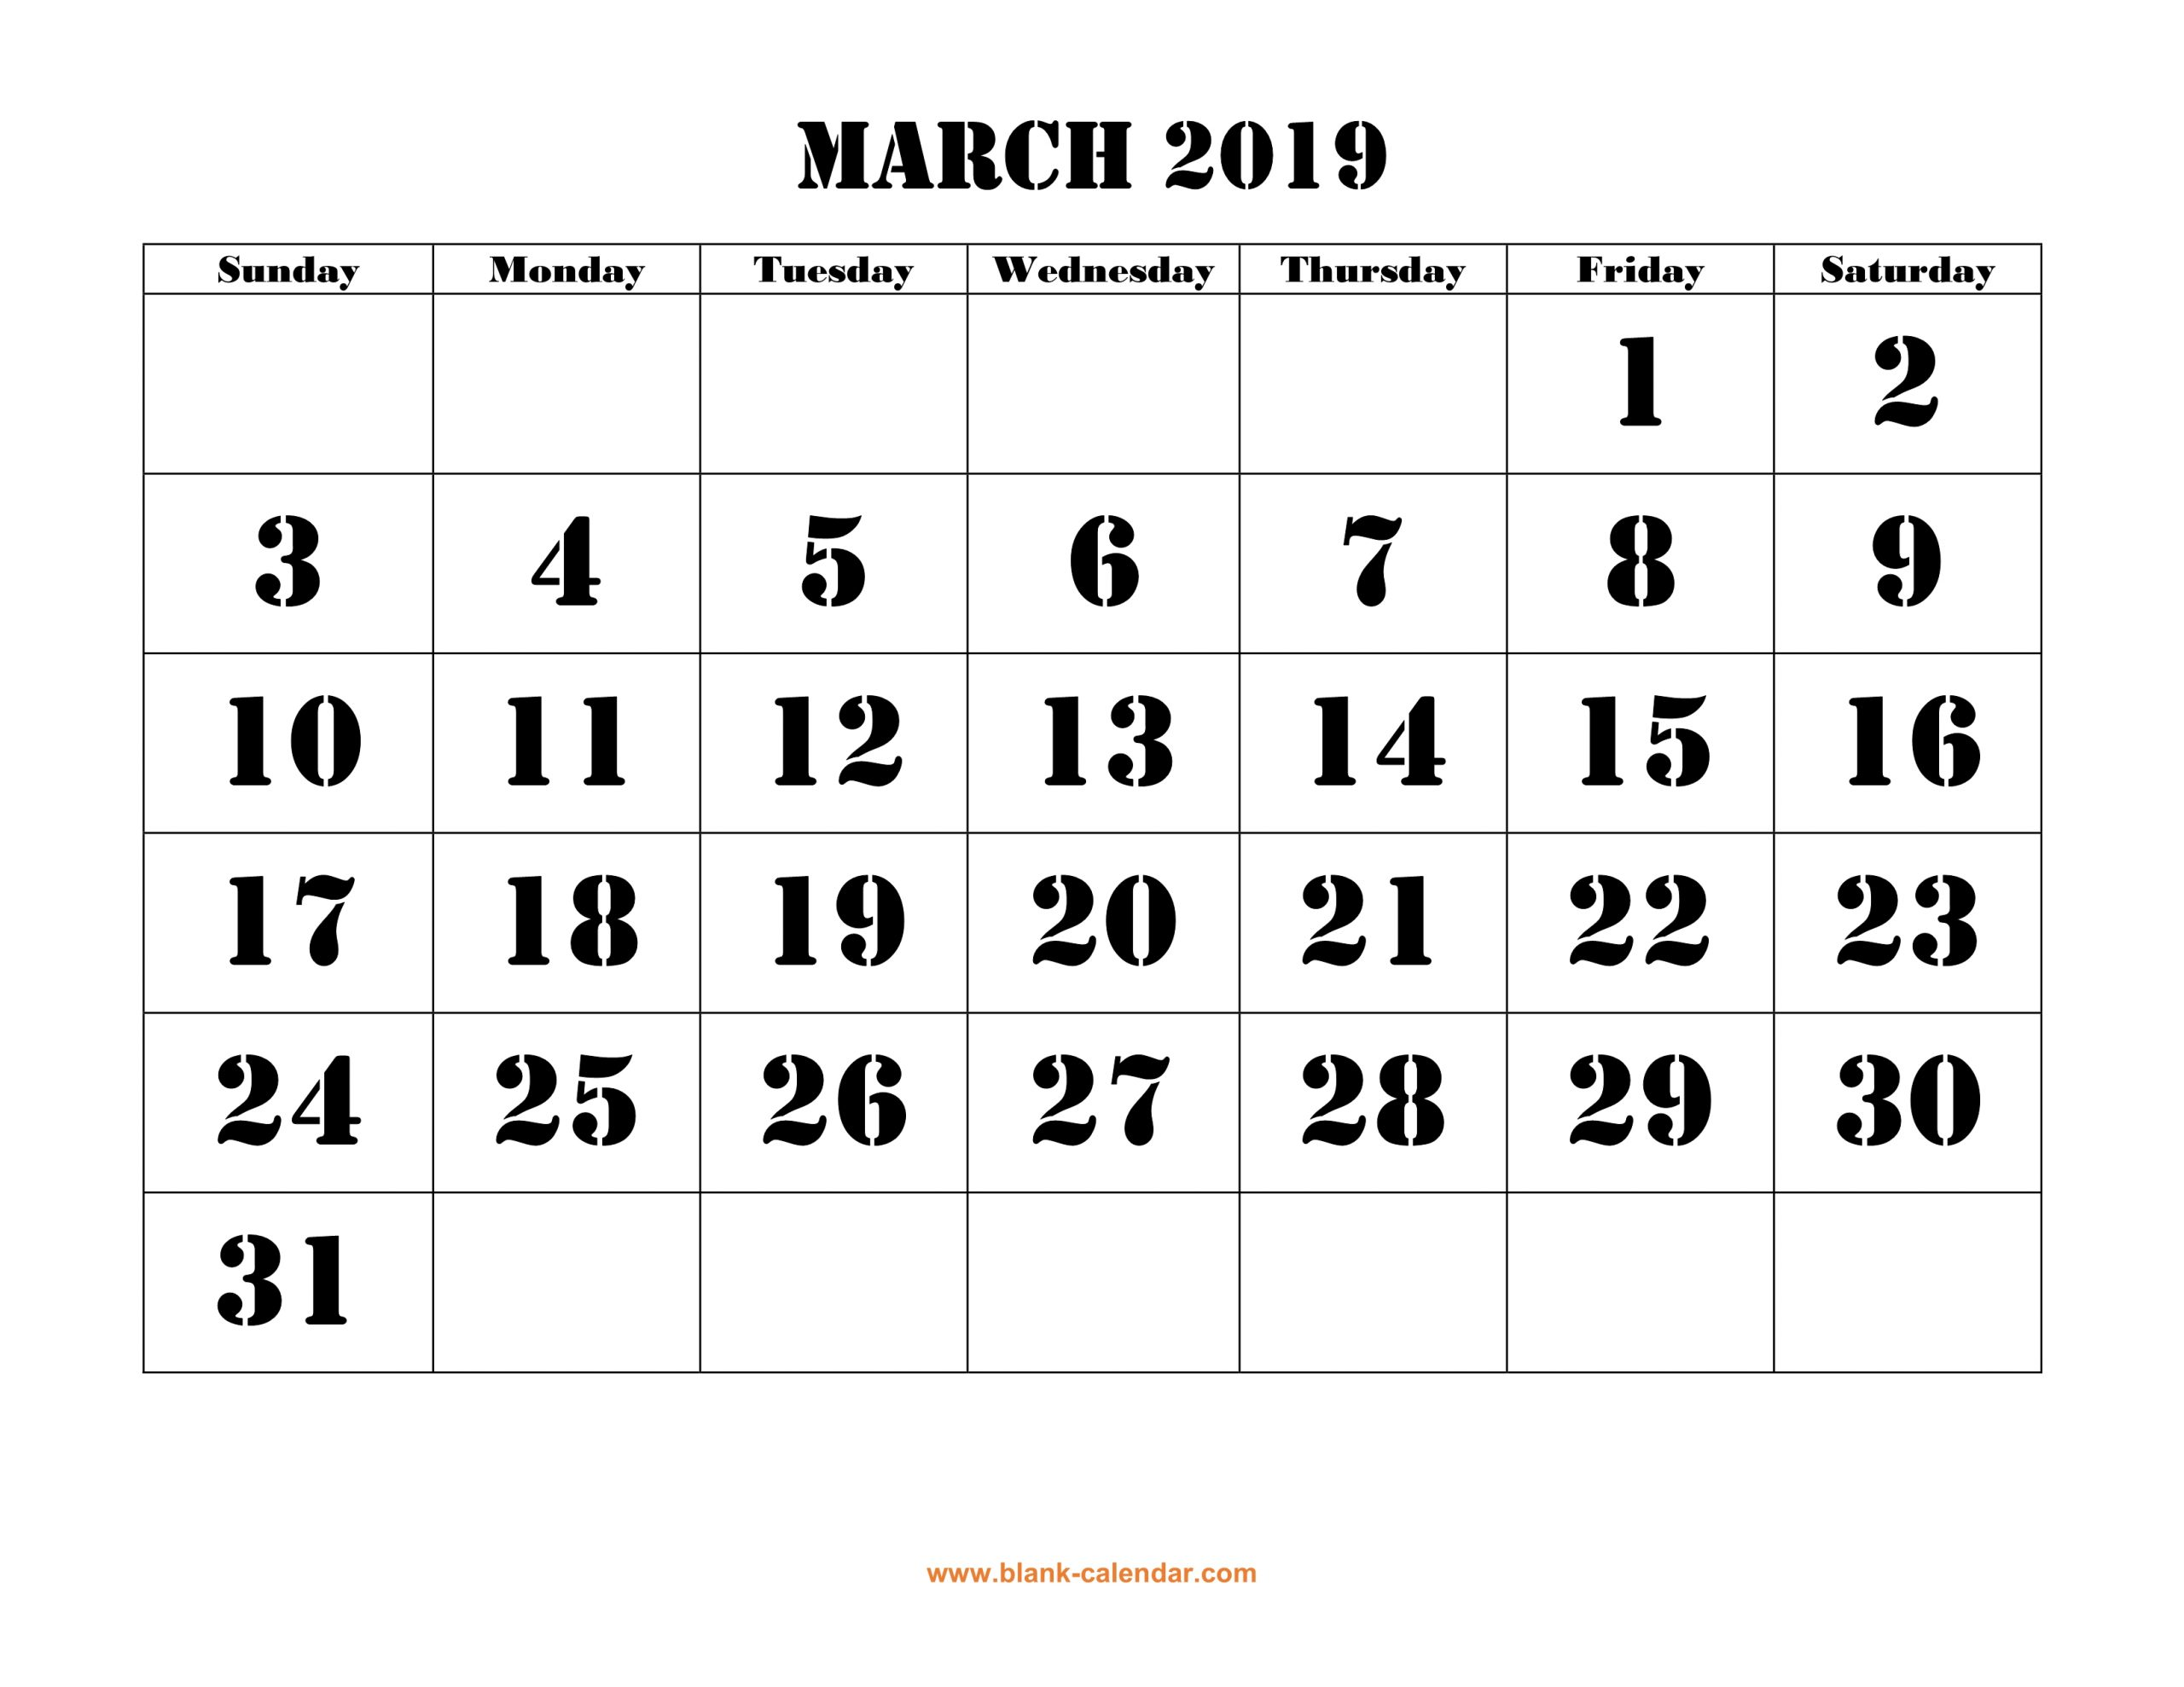 Free Download Printable March 2019 Calendar, Large Font